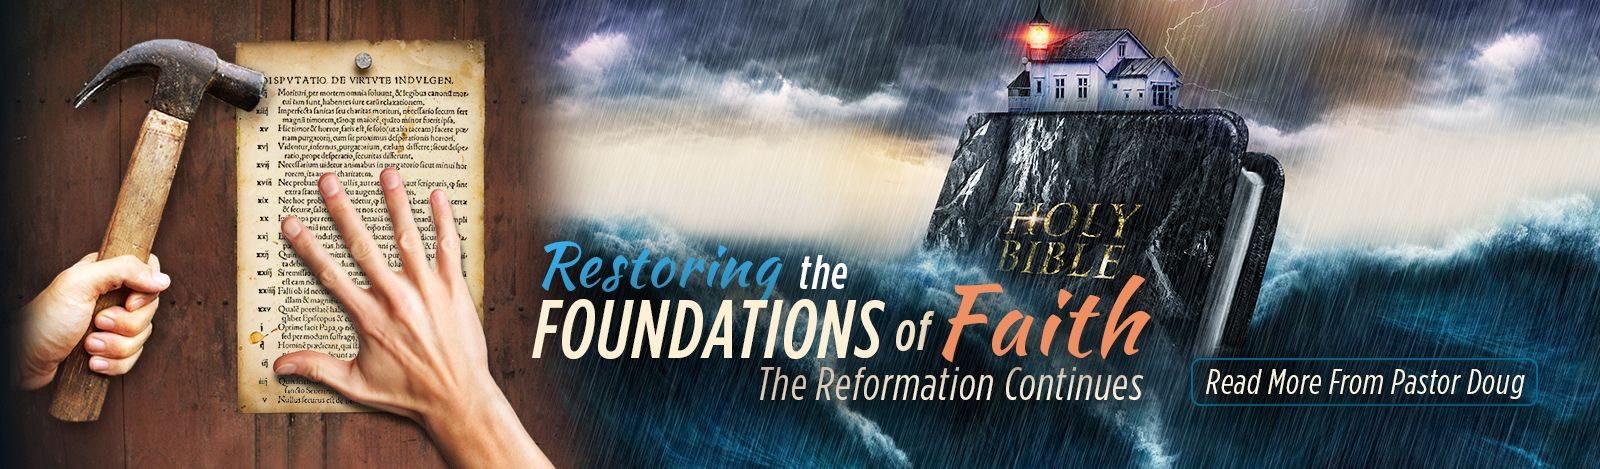 Restoring the Foundations of Faith